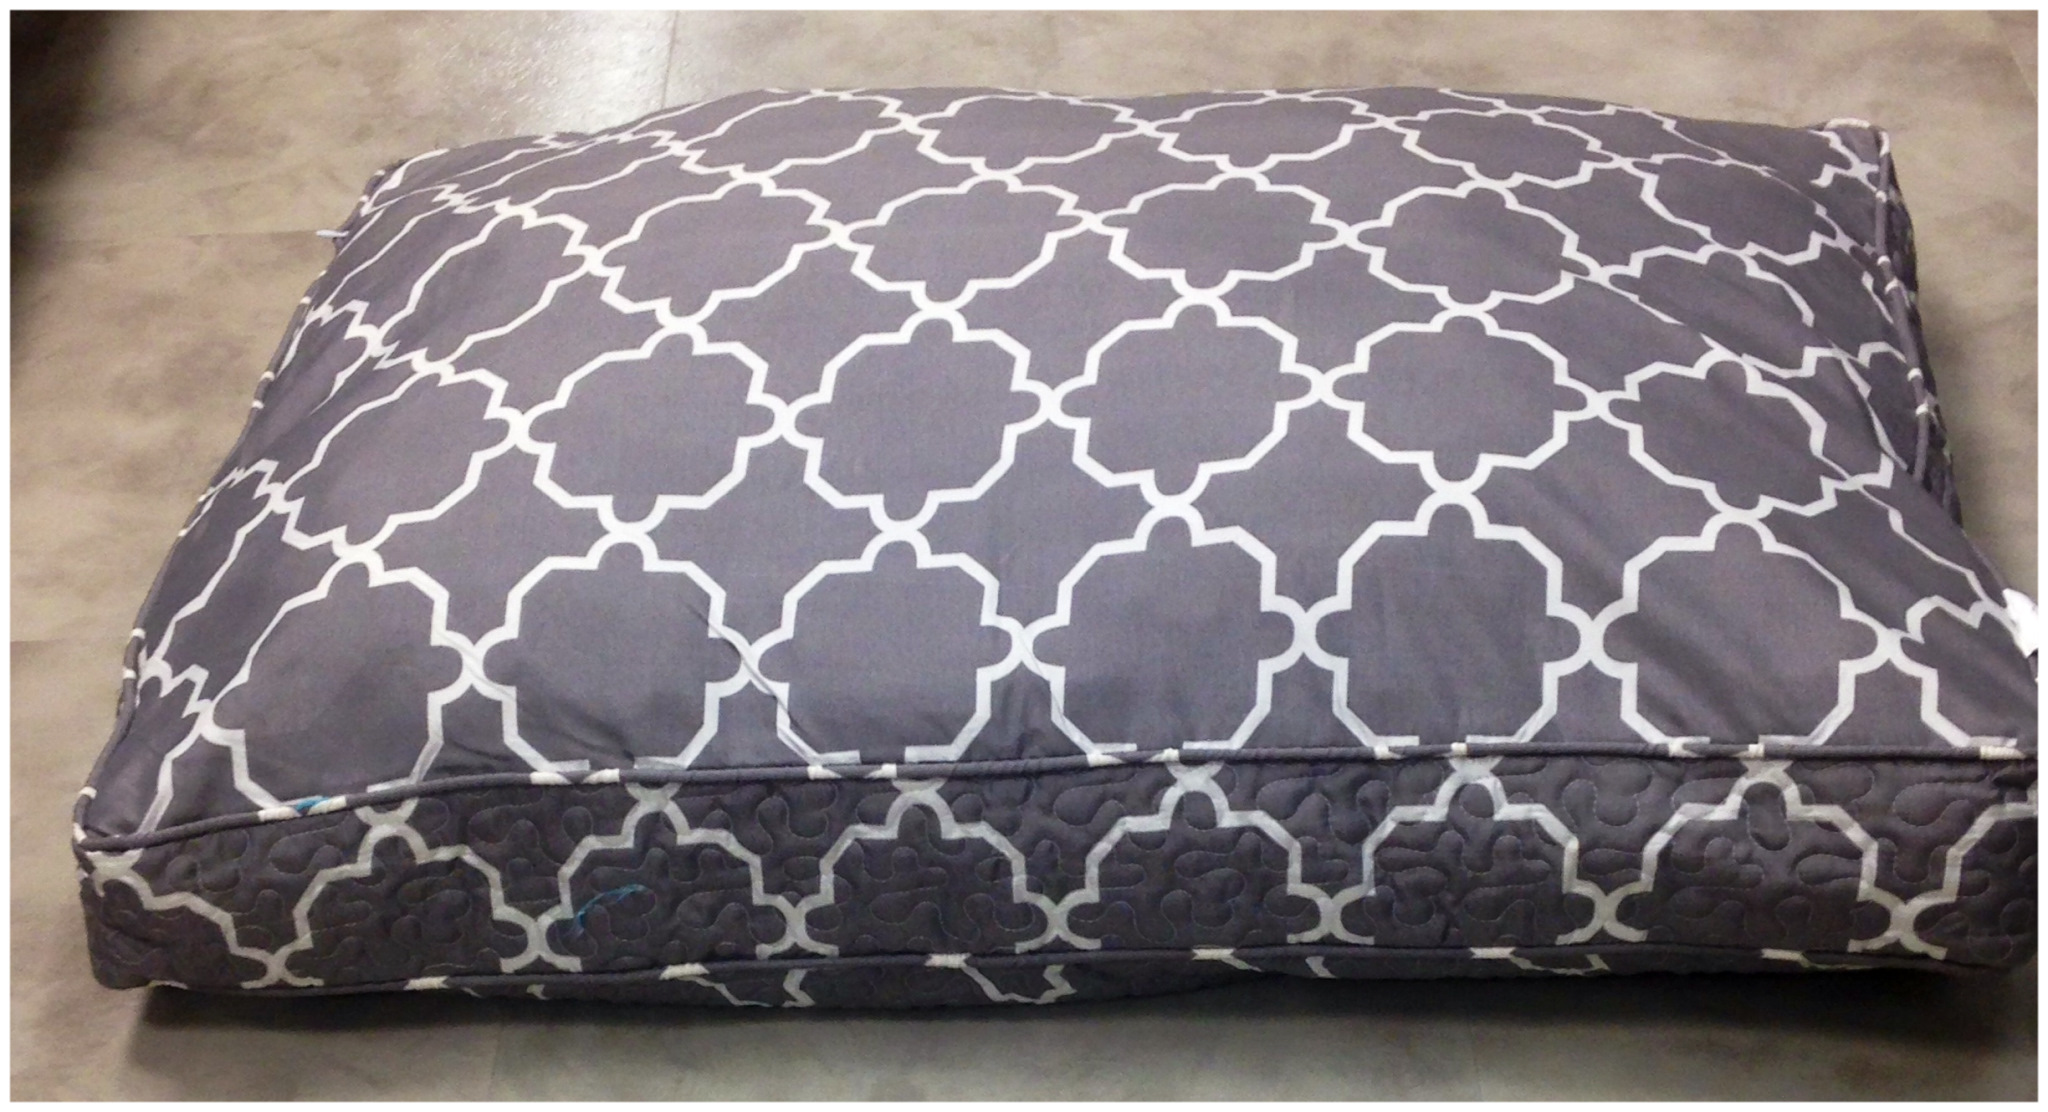 Throw Pillows Homesense : this is actually a dog bed. I have one in my son s room for his reading nook. It is perfectly ...